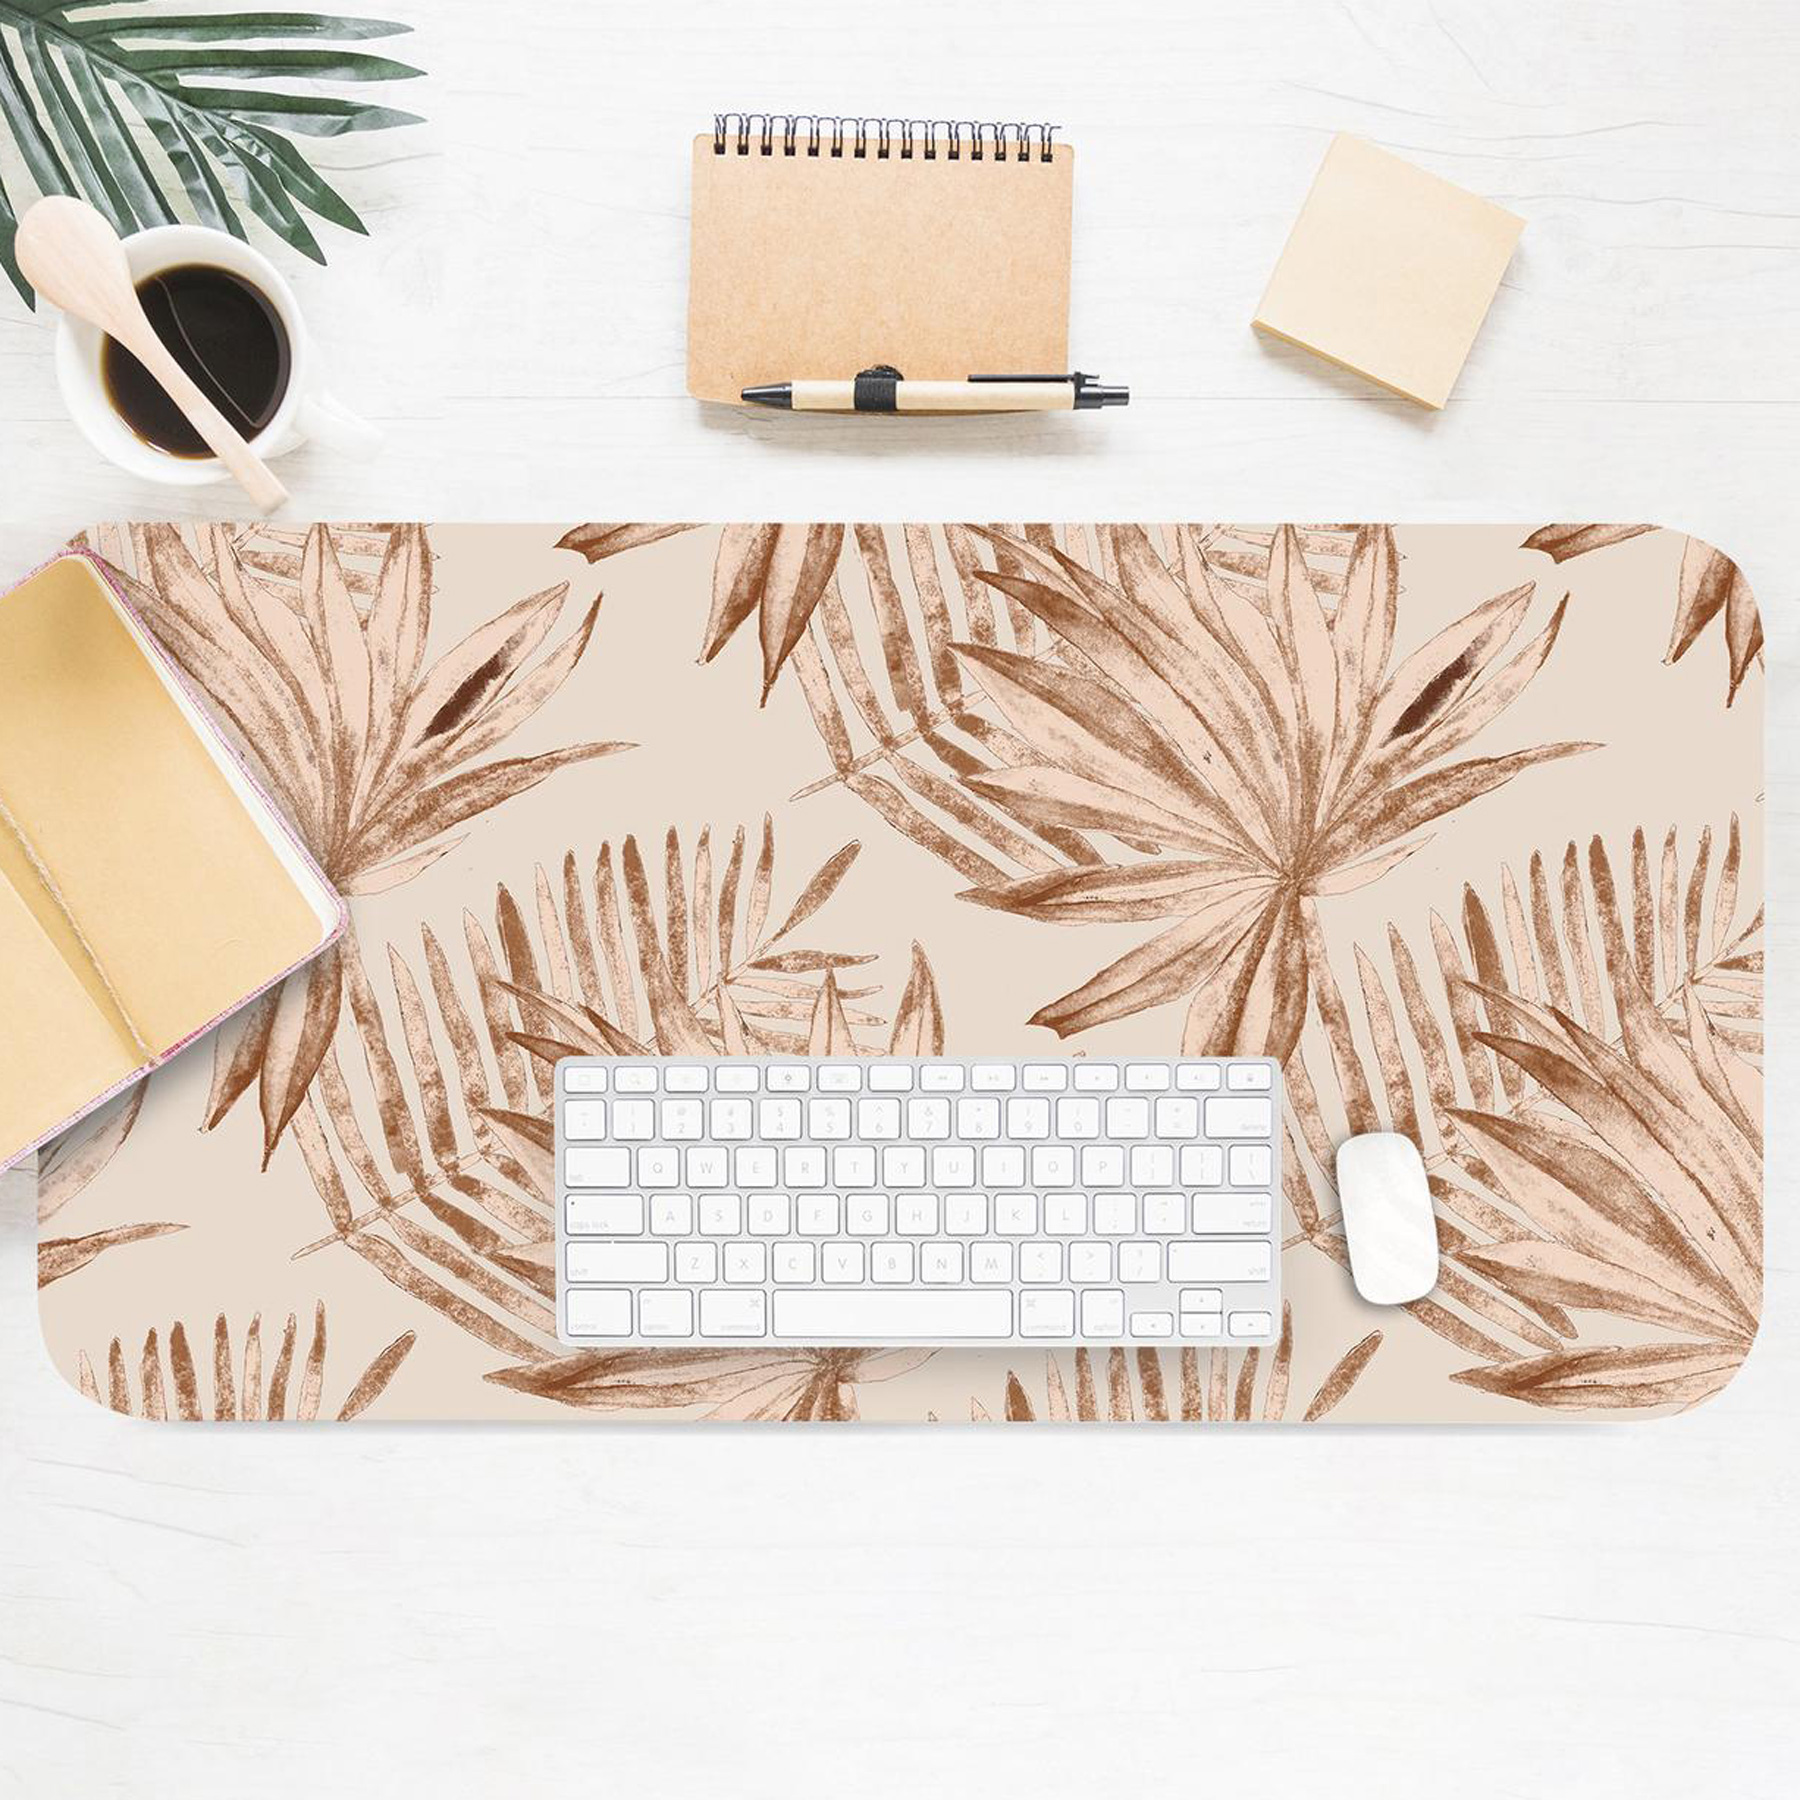 Gifts for Employees, Coworkers, and Bosses 2020: Etsy palm leaf desk pad